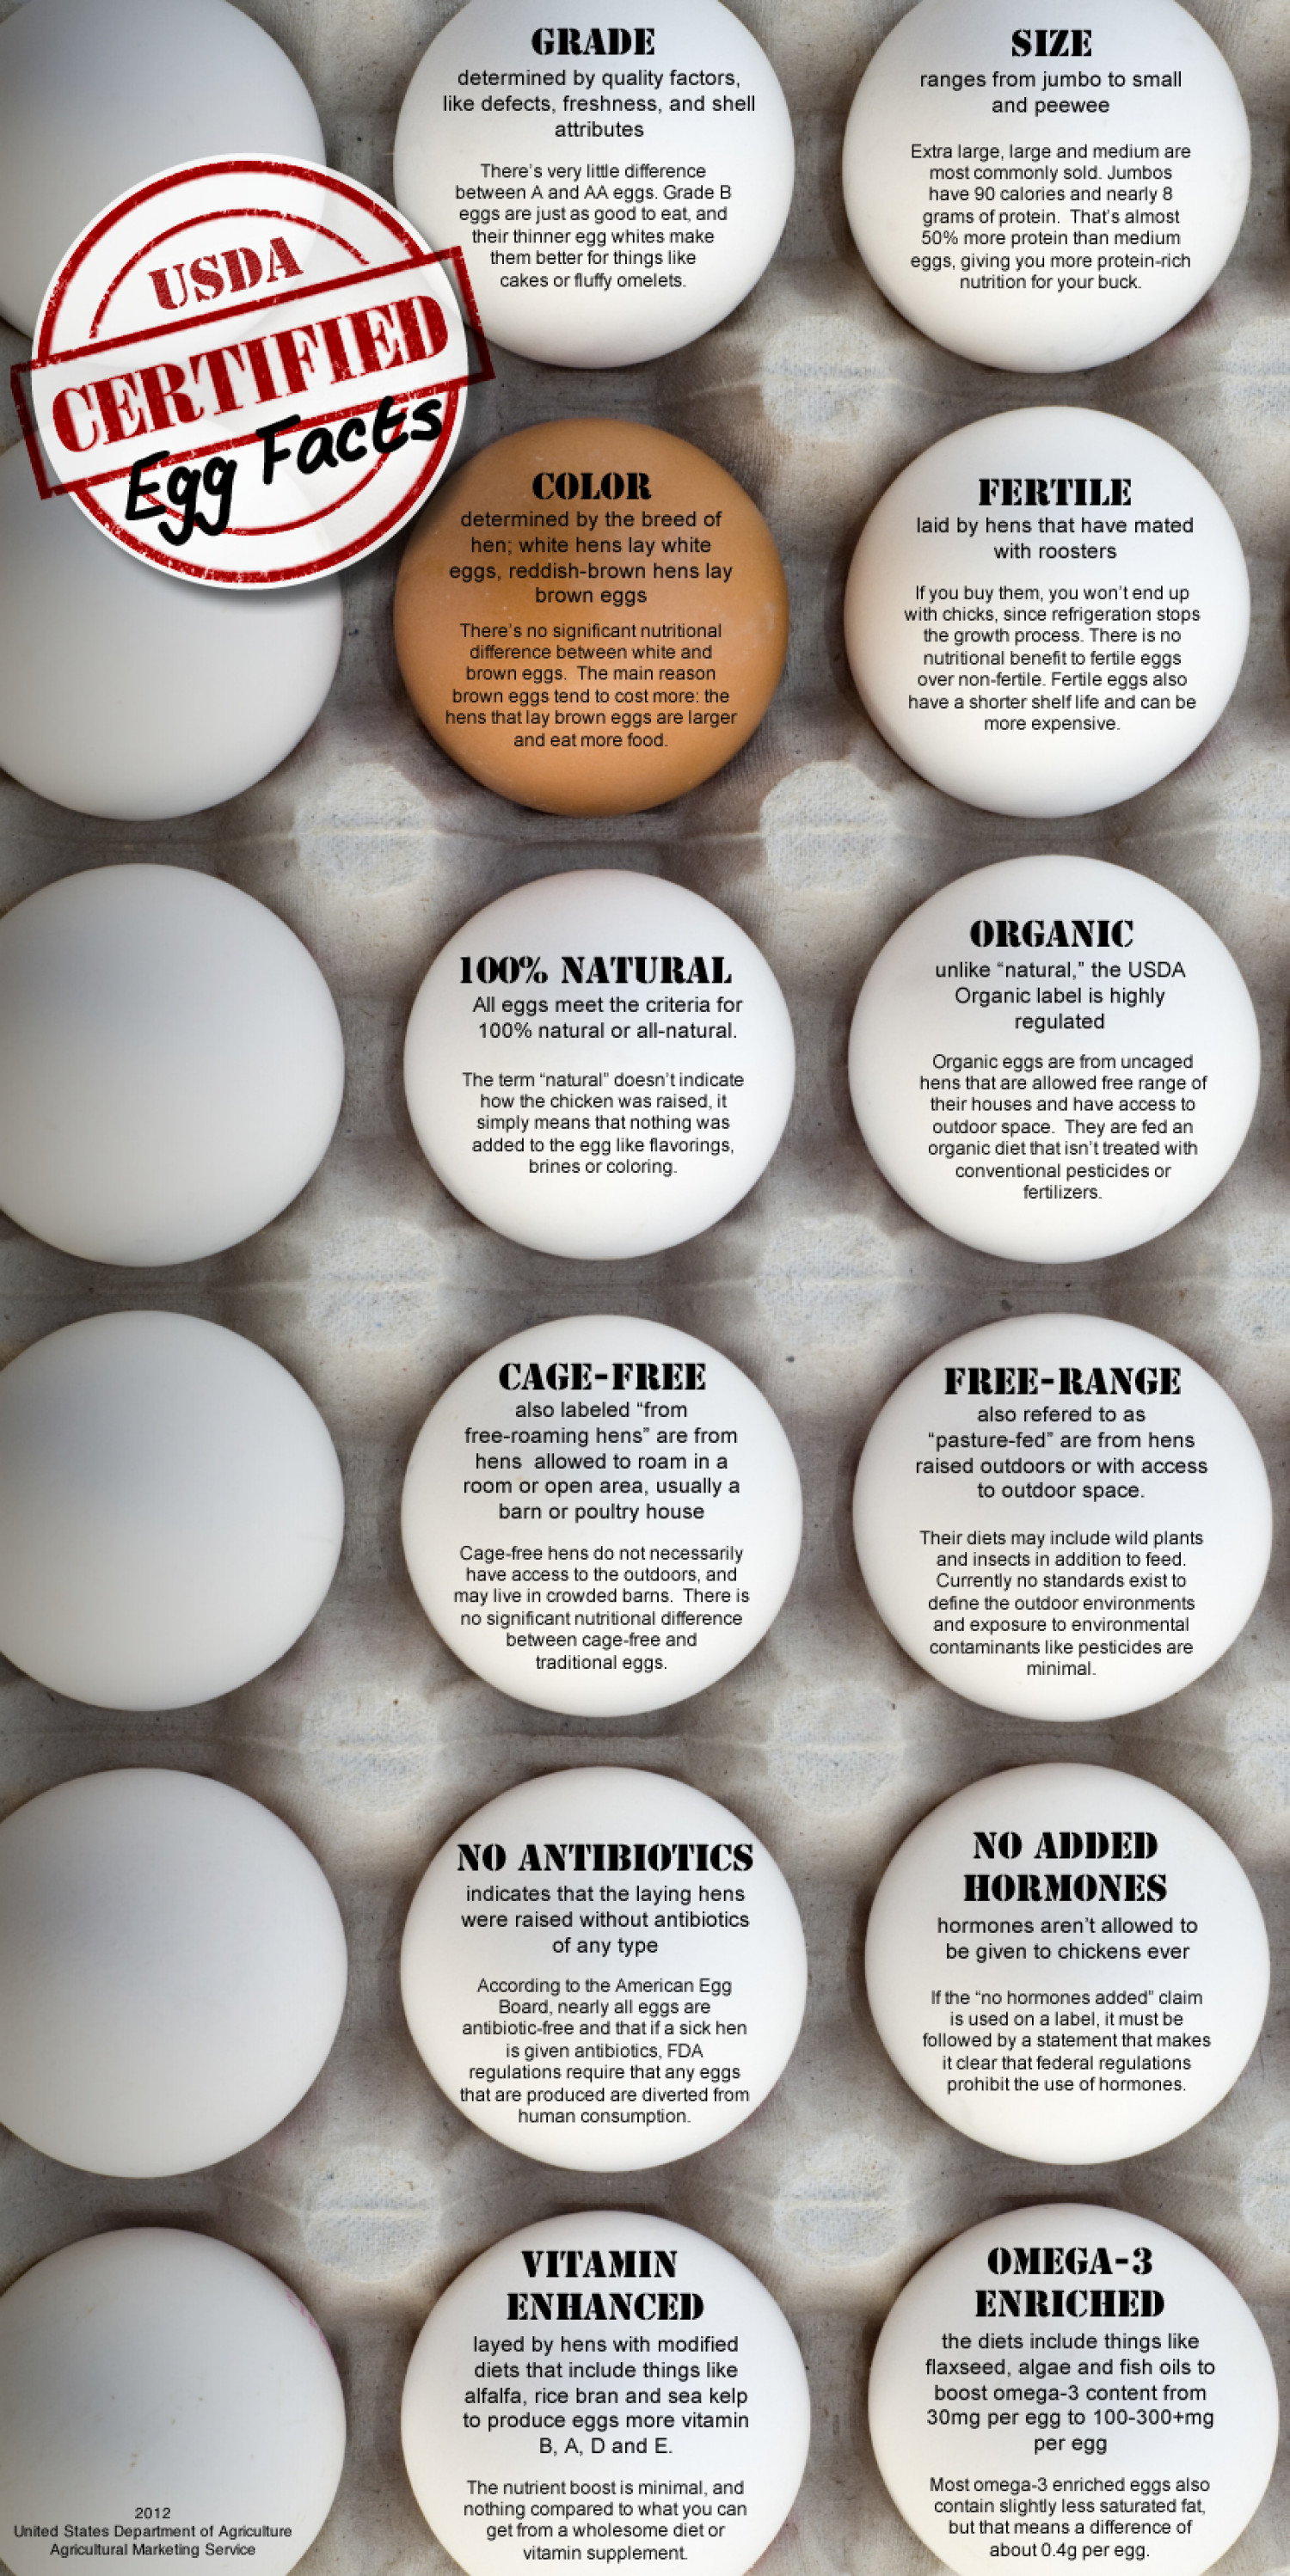 USDA Certified Egg Facts Infographic